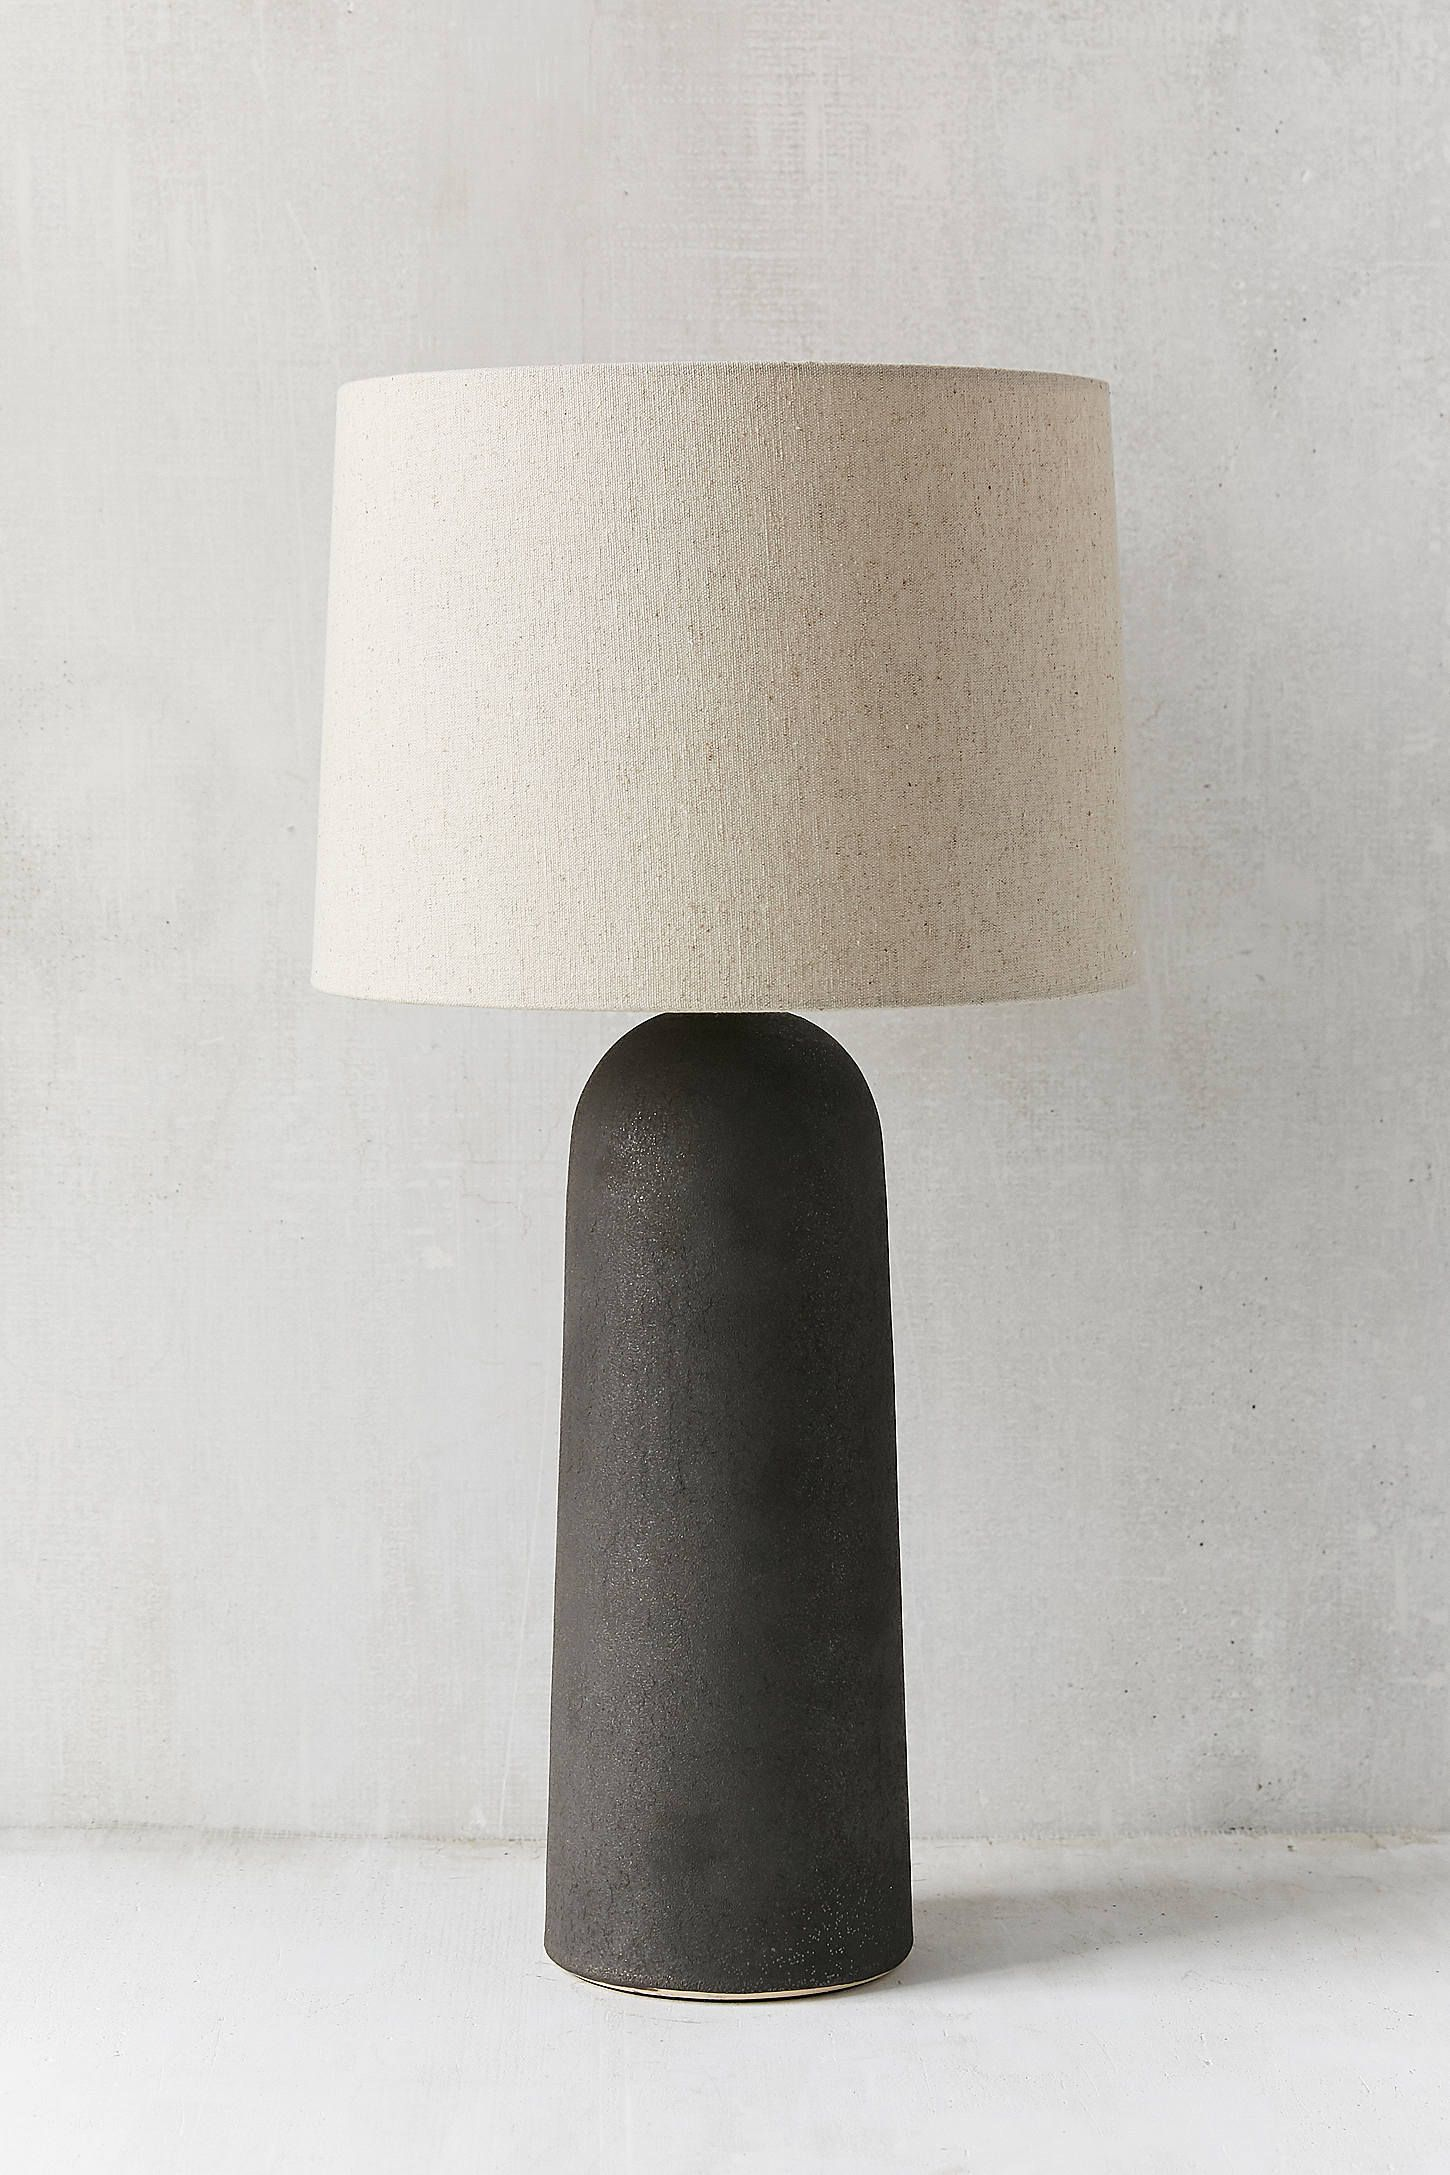 Clarke Ceramic Table Lamp | Ceramic table lamps, Table lamp ...